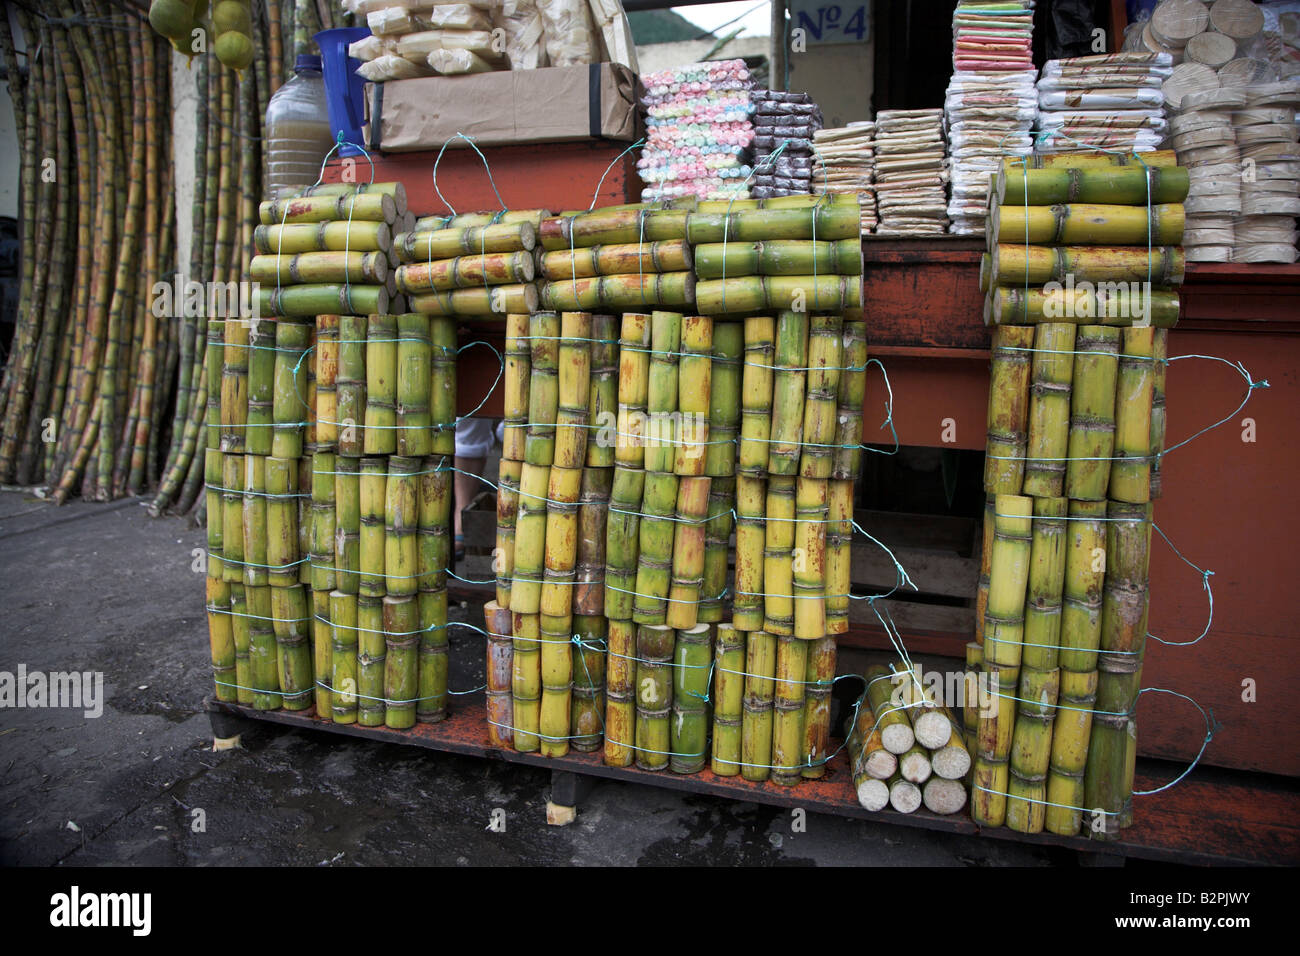 Raw Sugar Cane Sticks And Other Sweets On Sale In The Town